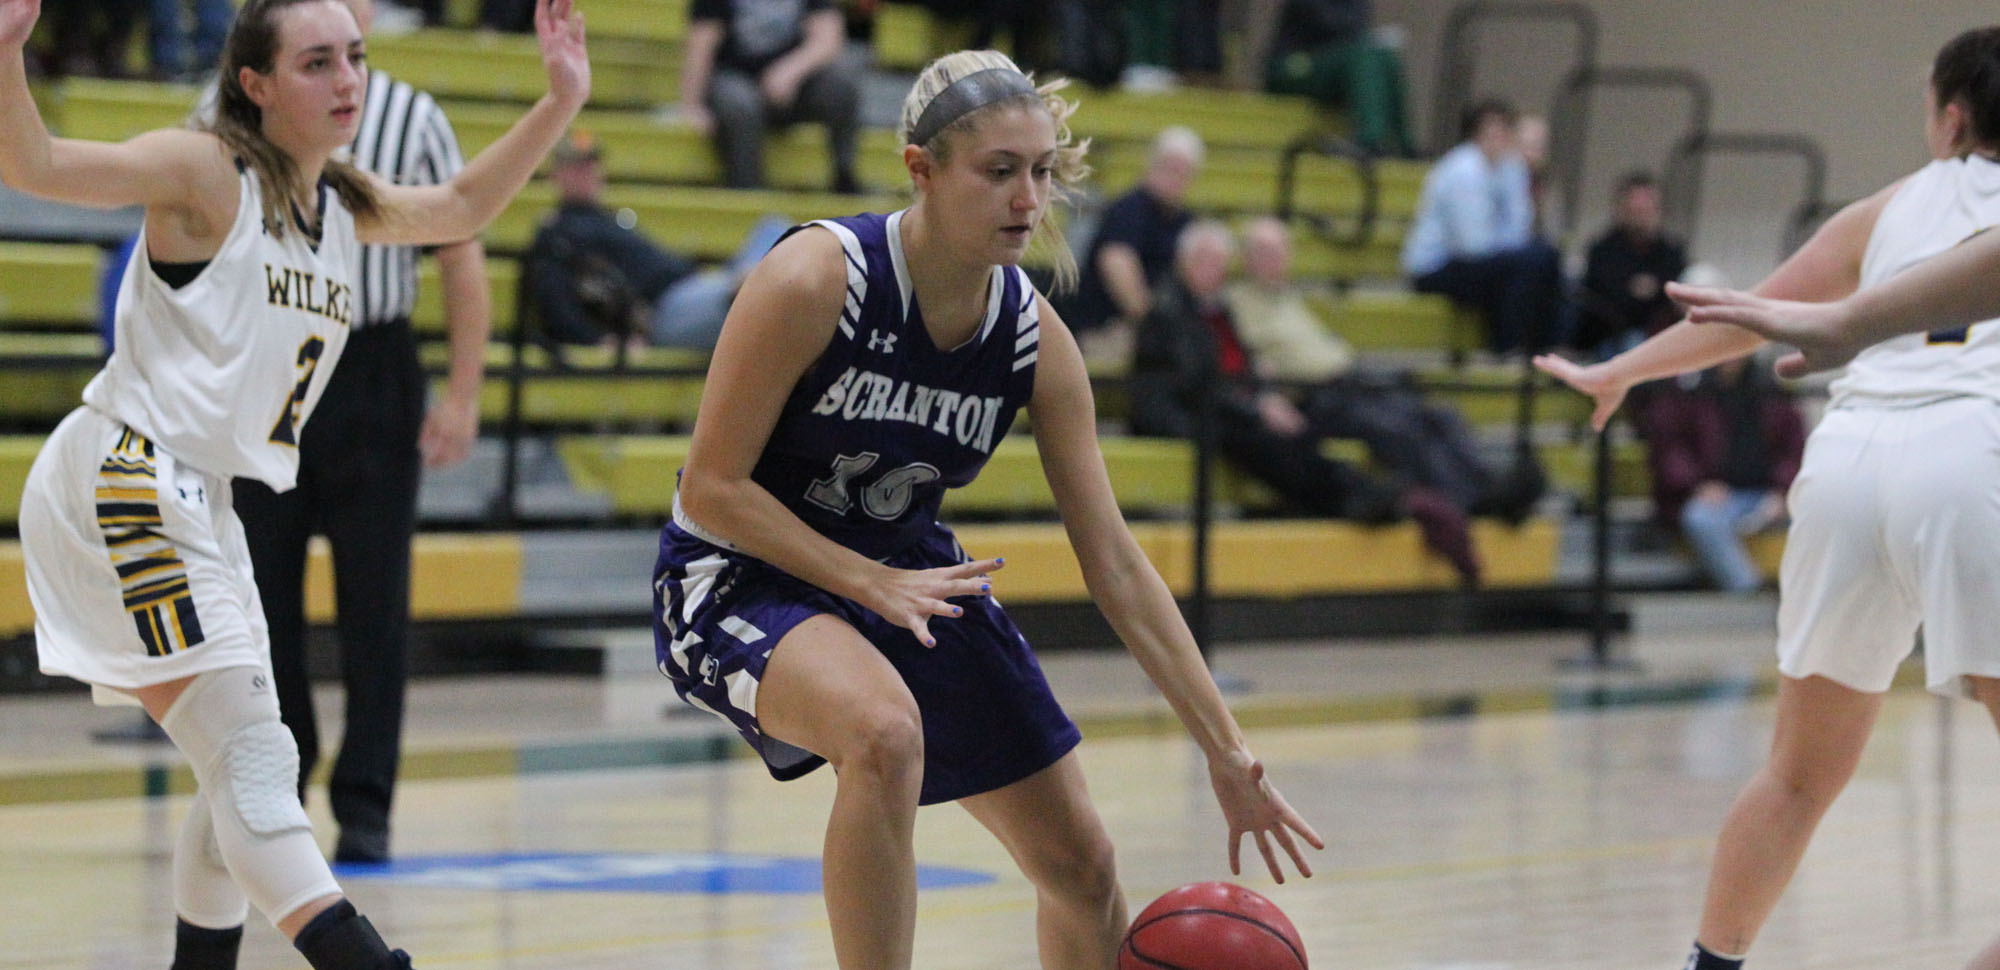 Sophomore guard Ava Gammo scored a career-best 14 points, nailing four three-pointers in an 85-48 win over Goucher on Saturday.